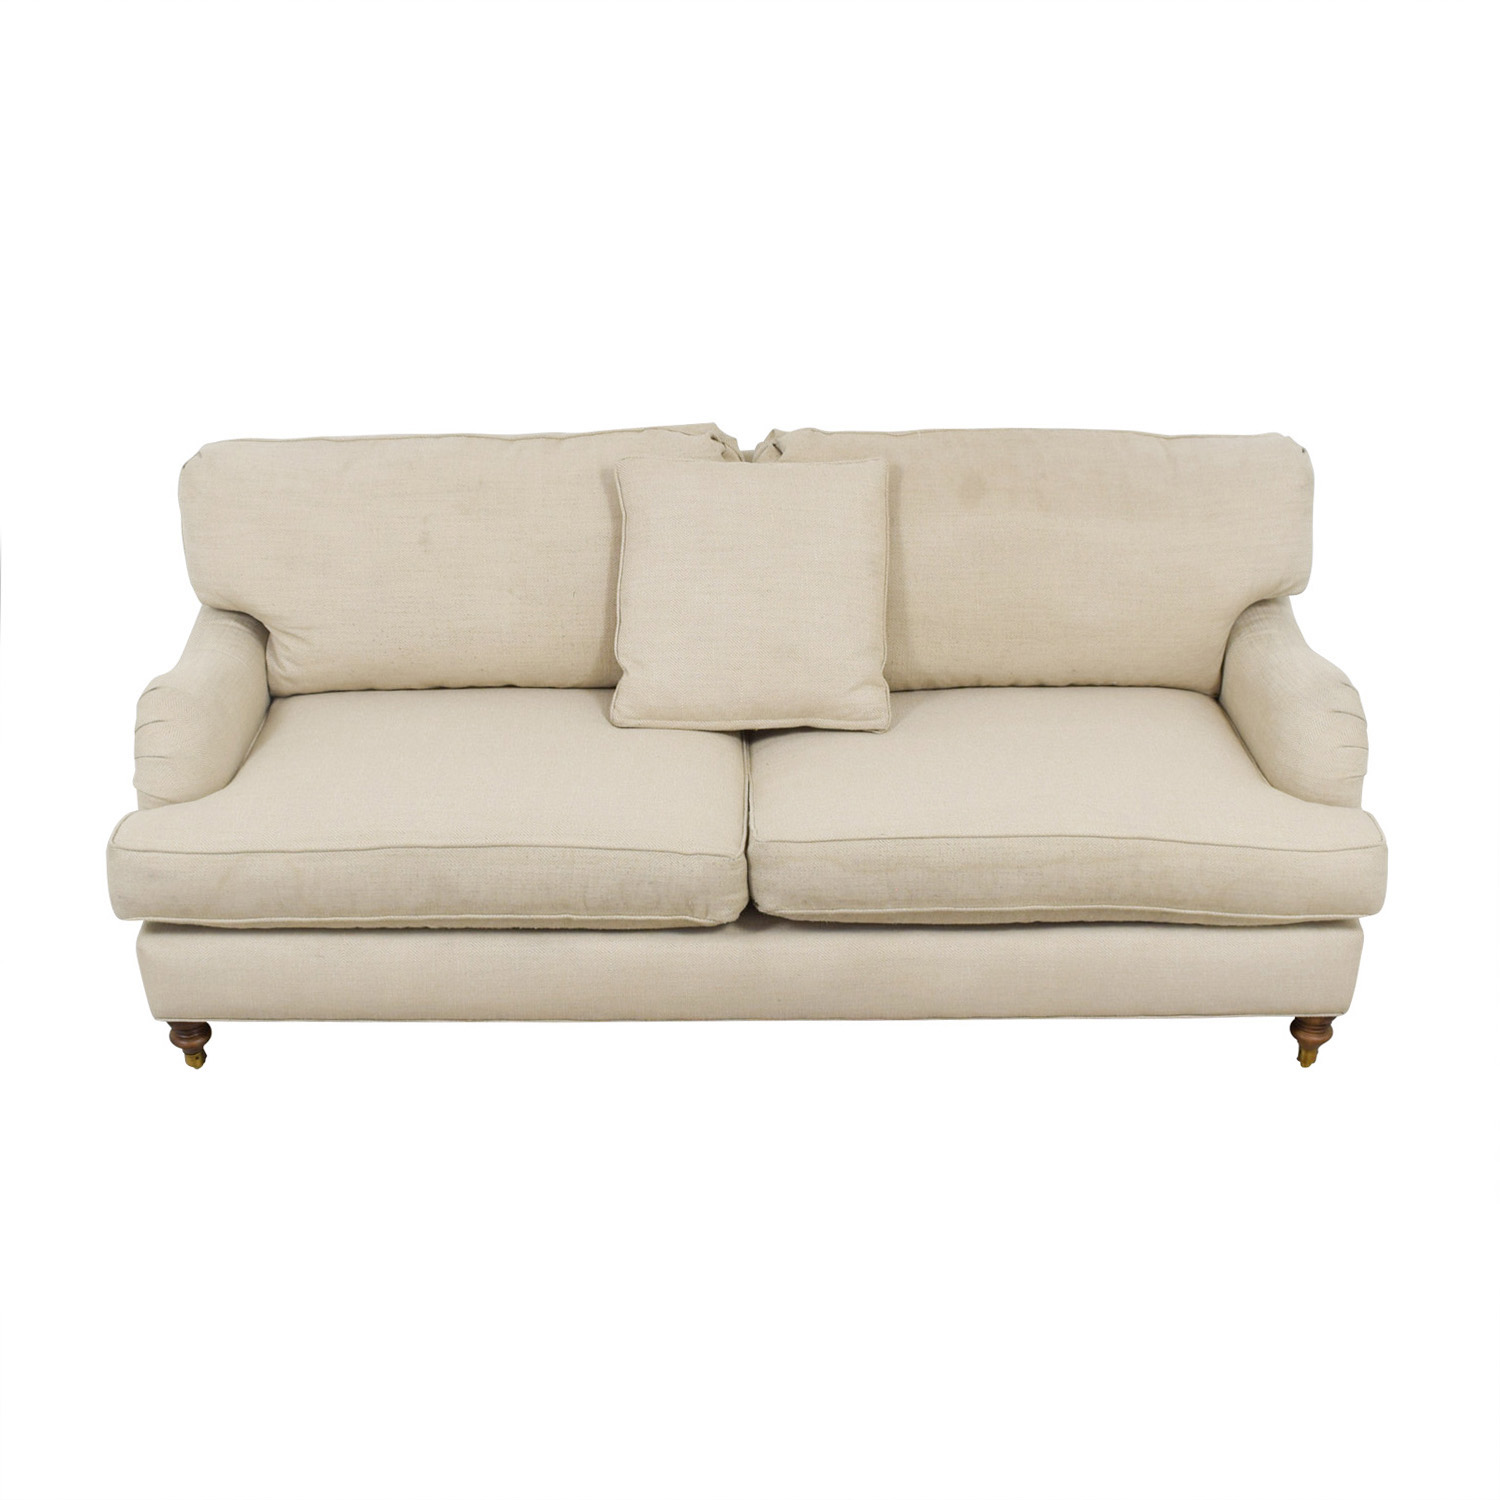 Robin Bruce Brooke Natural Roll-Arm Sofa Robin Bruce